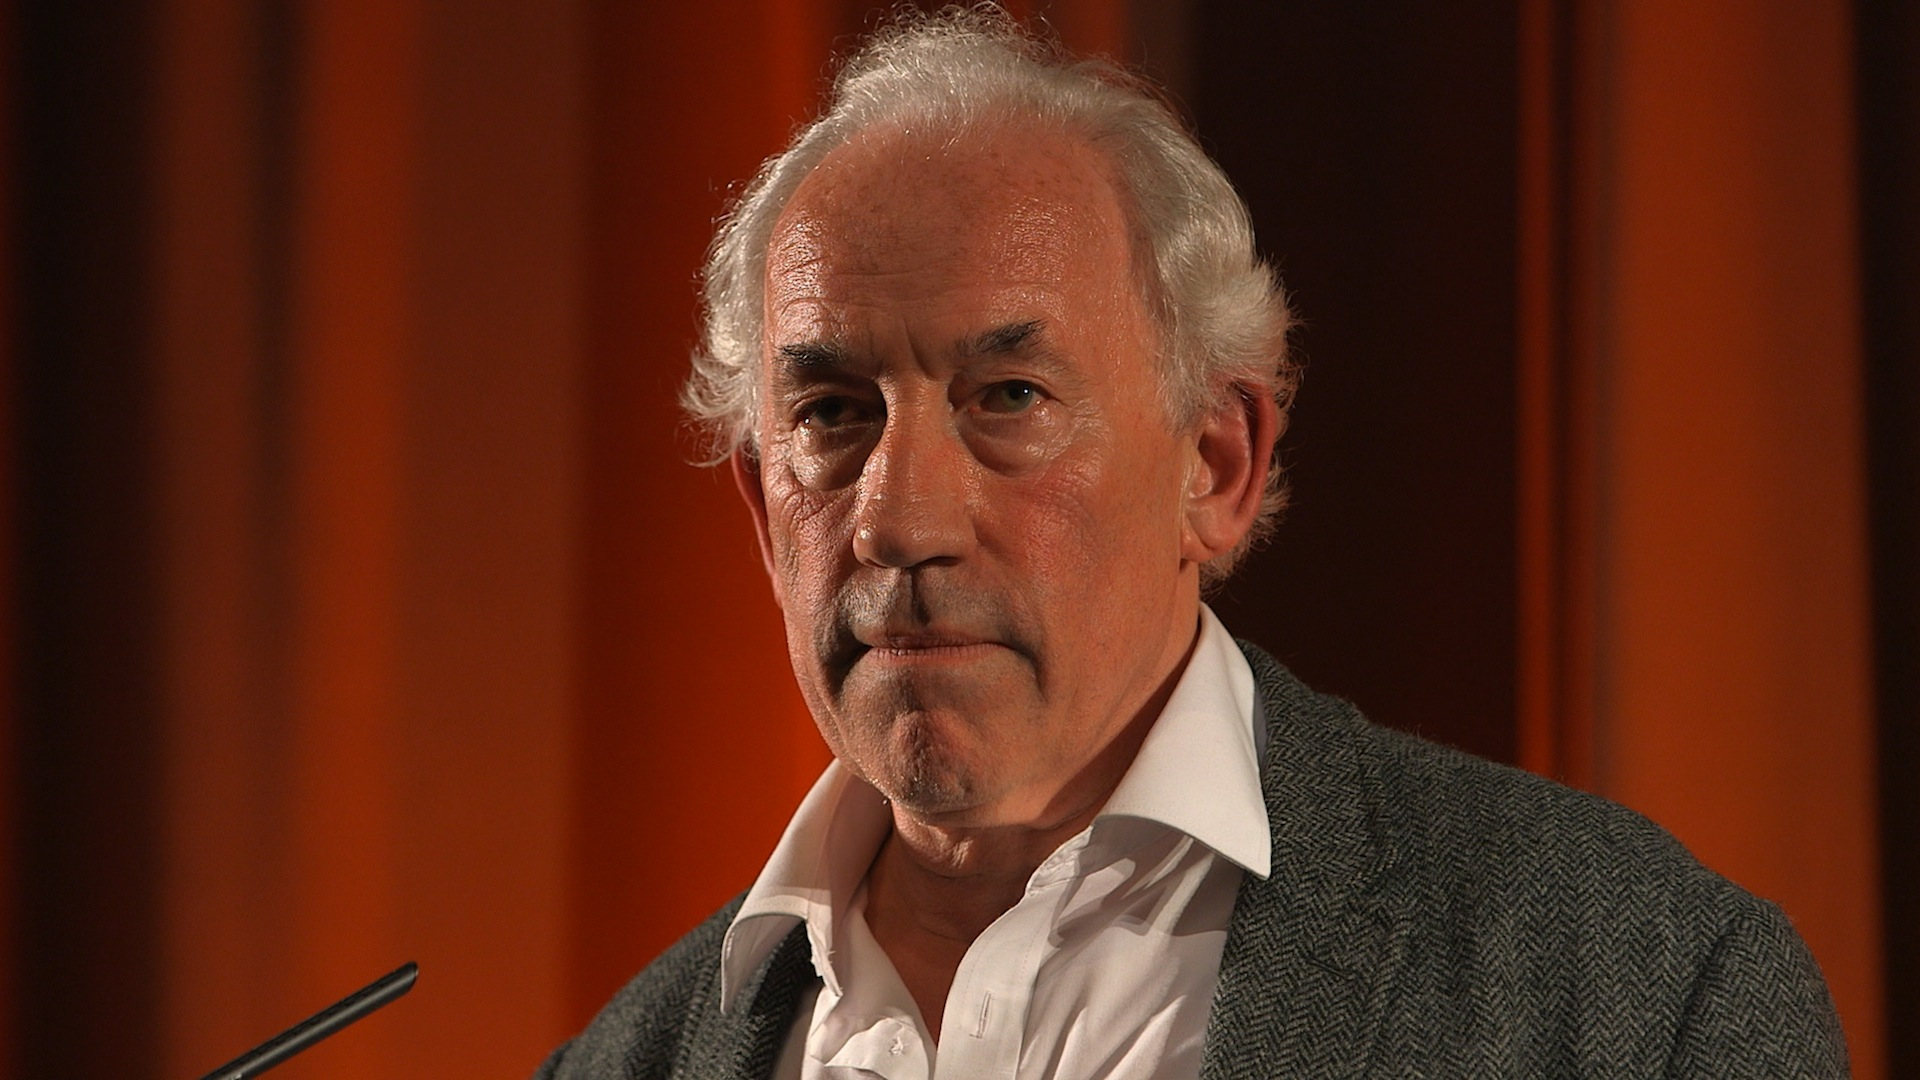 Simon Callow (born 1949)